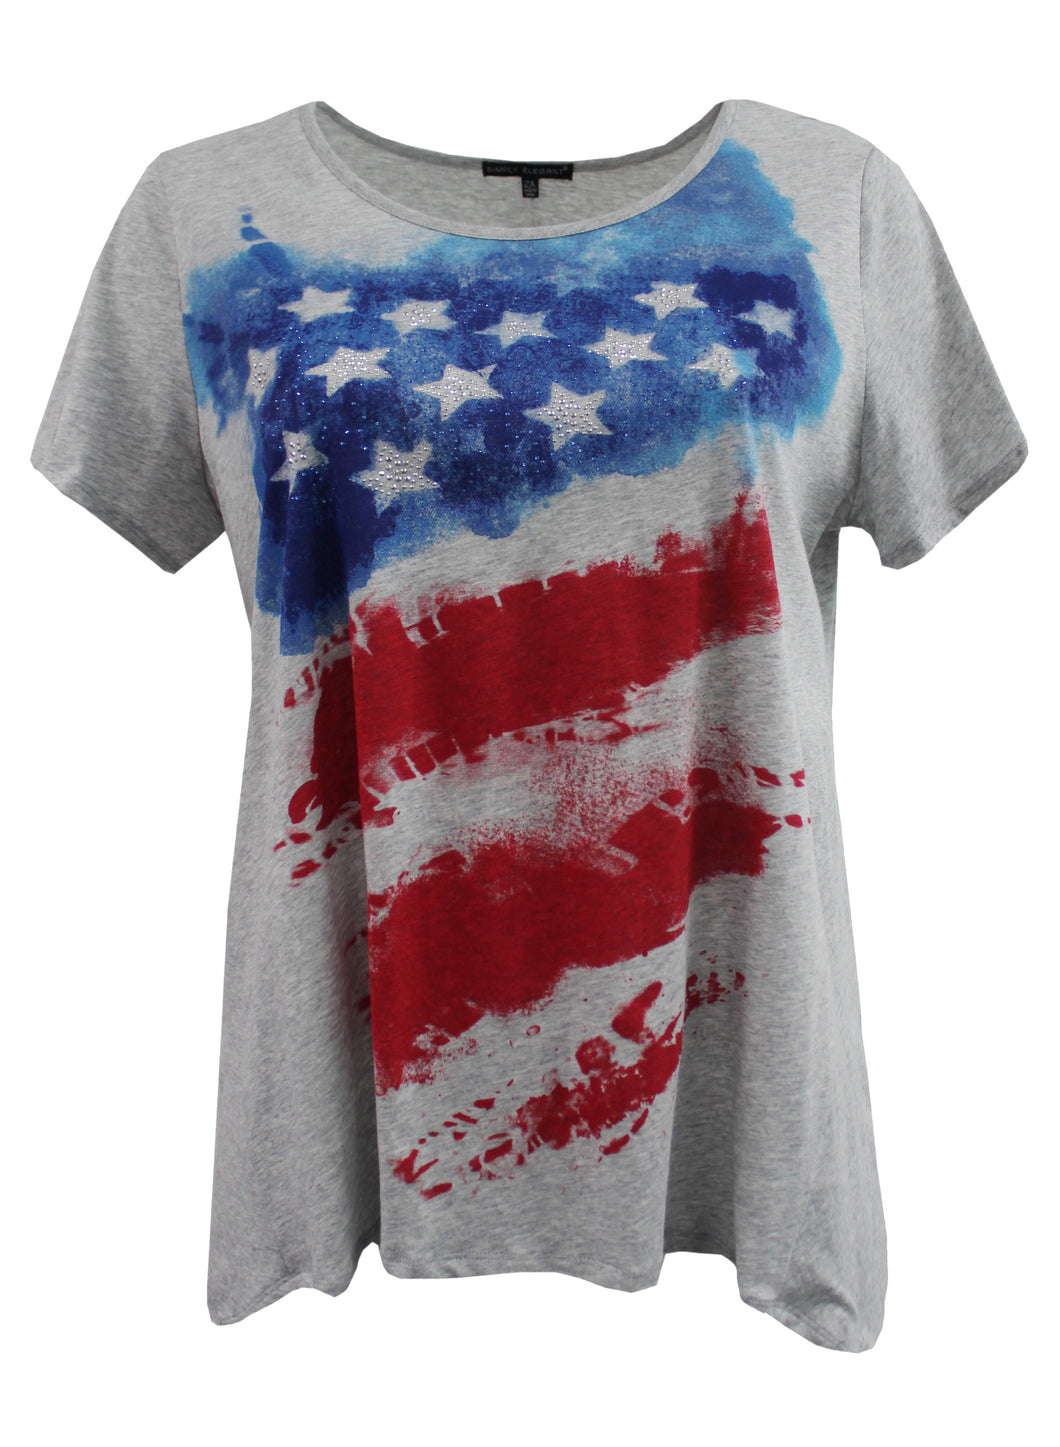 Abstract Tie-Dye American Flag Tee w/ Rhinestone Stars